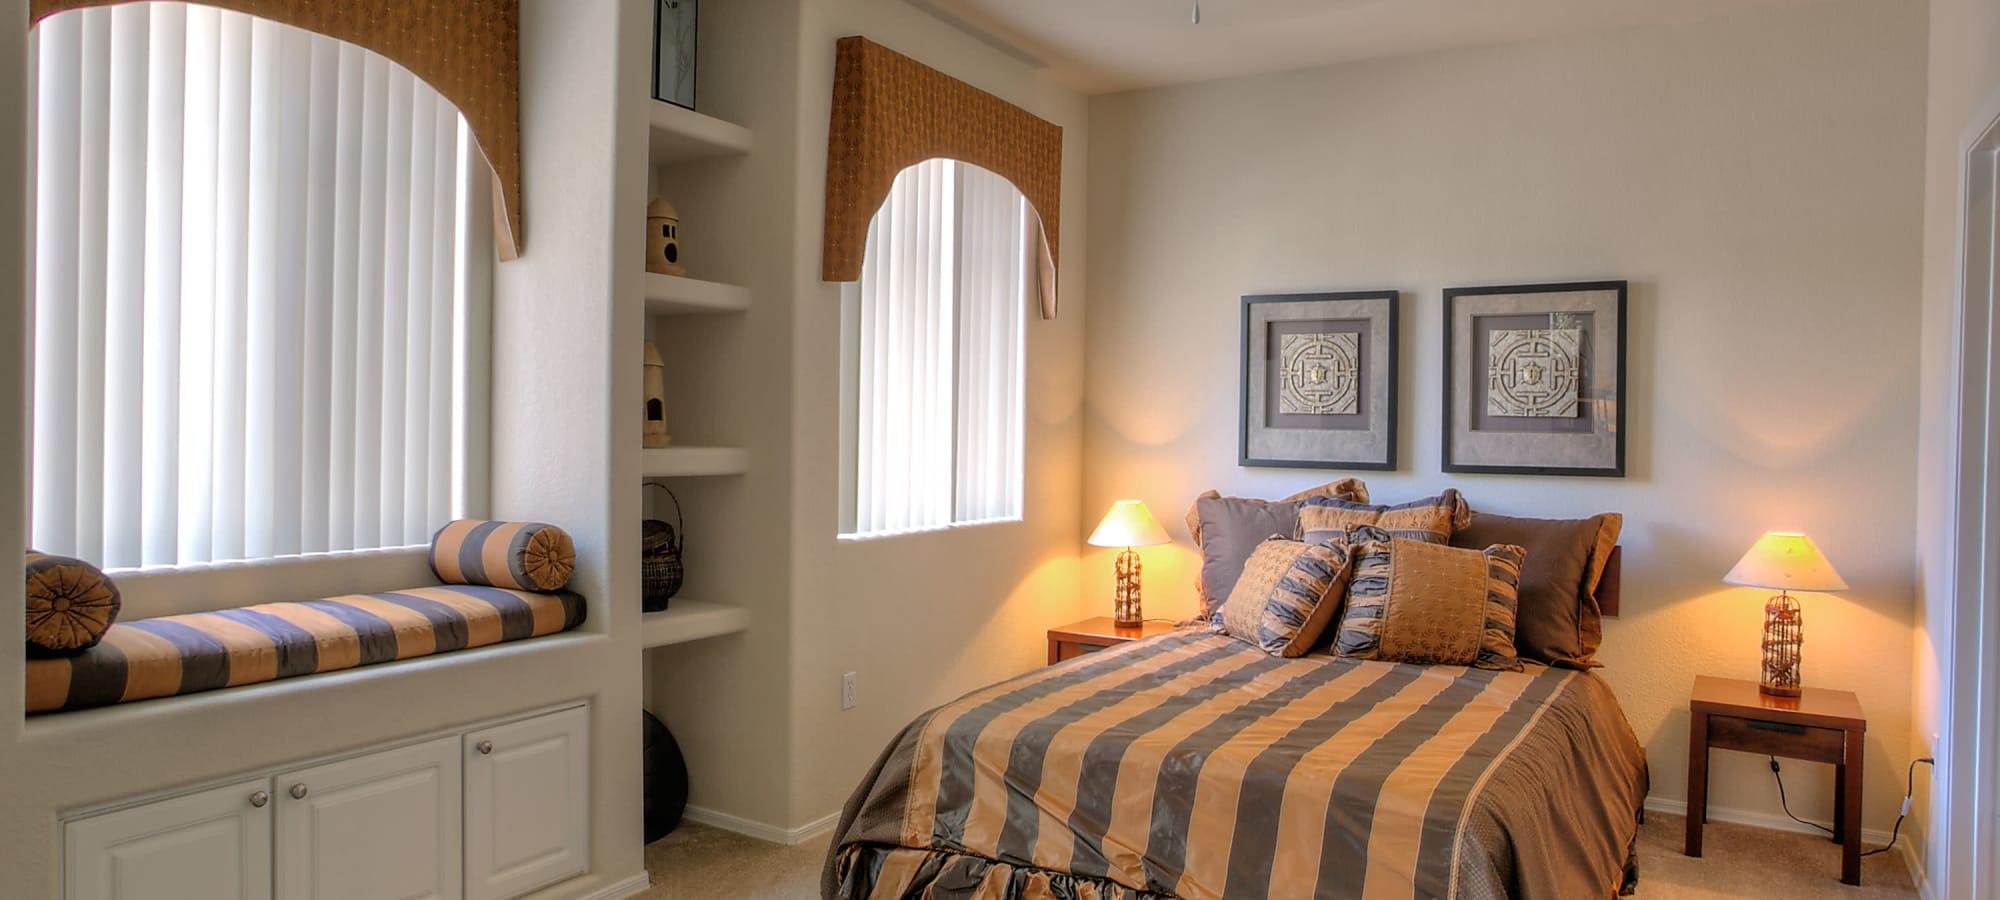 Bedroom with built in storage at Remington Ranch in Litchfield Park, Arizona